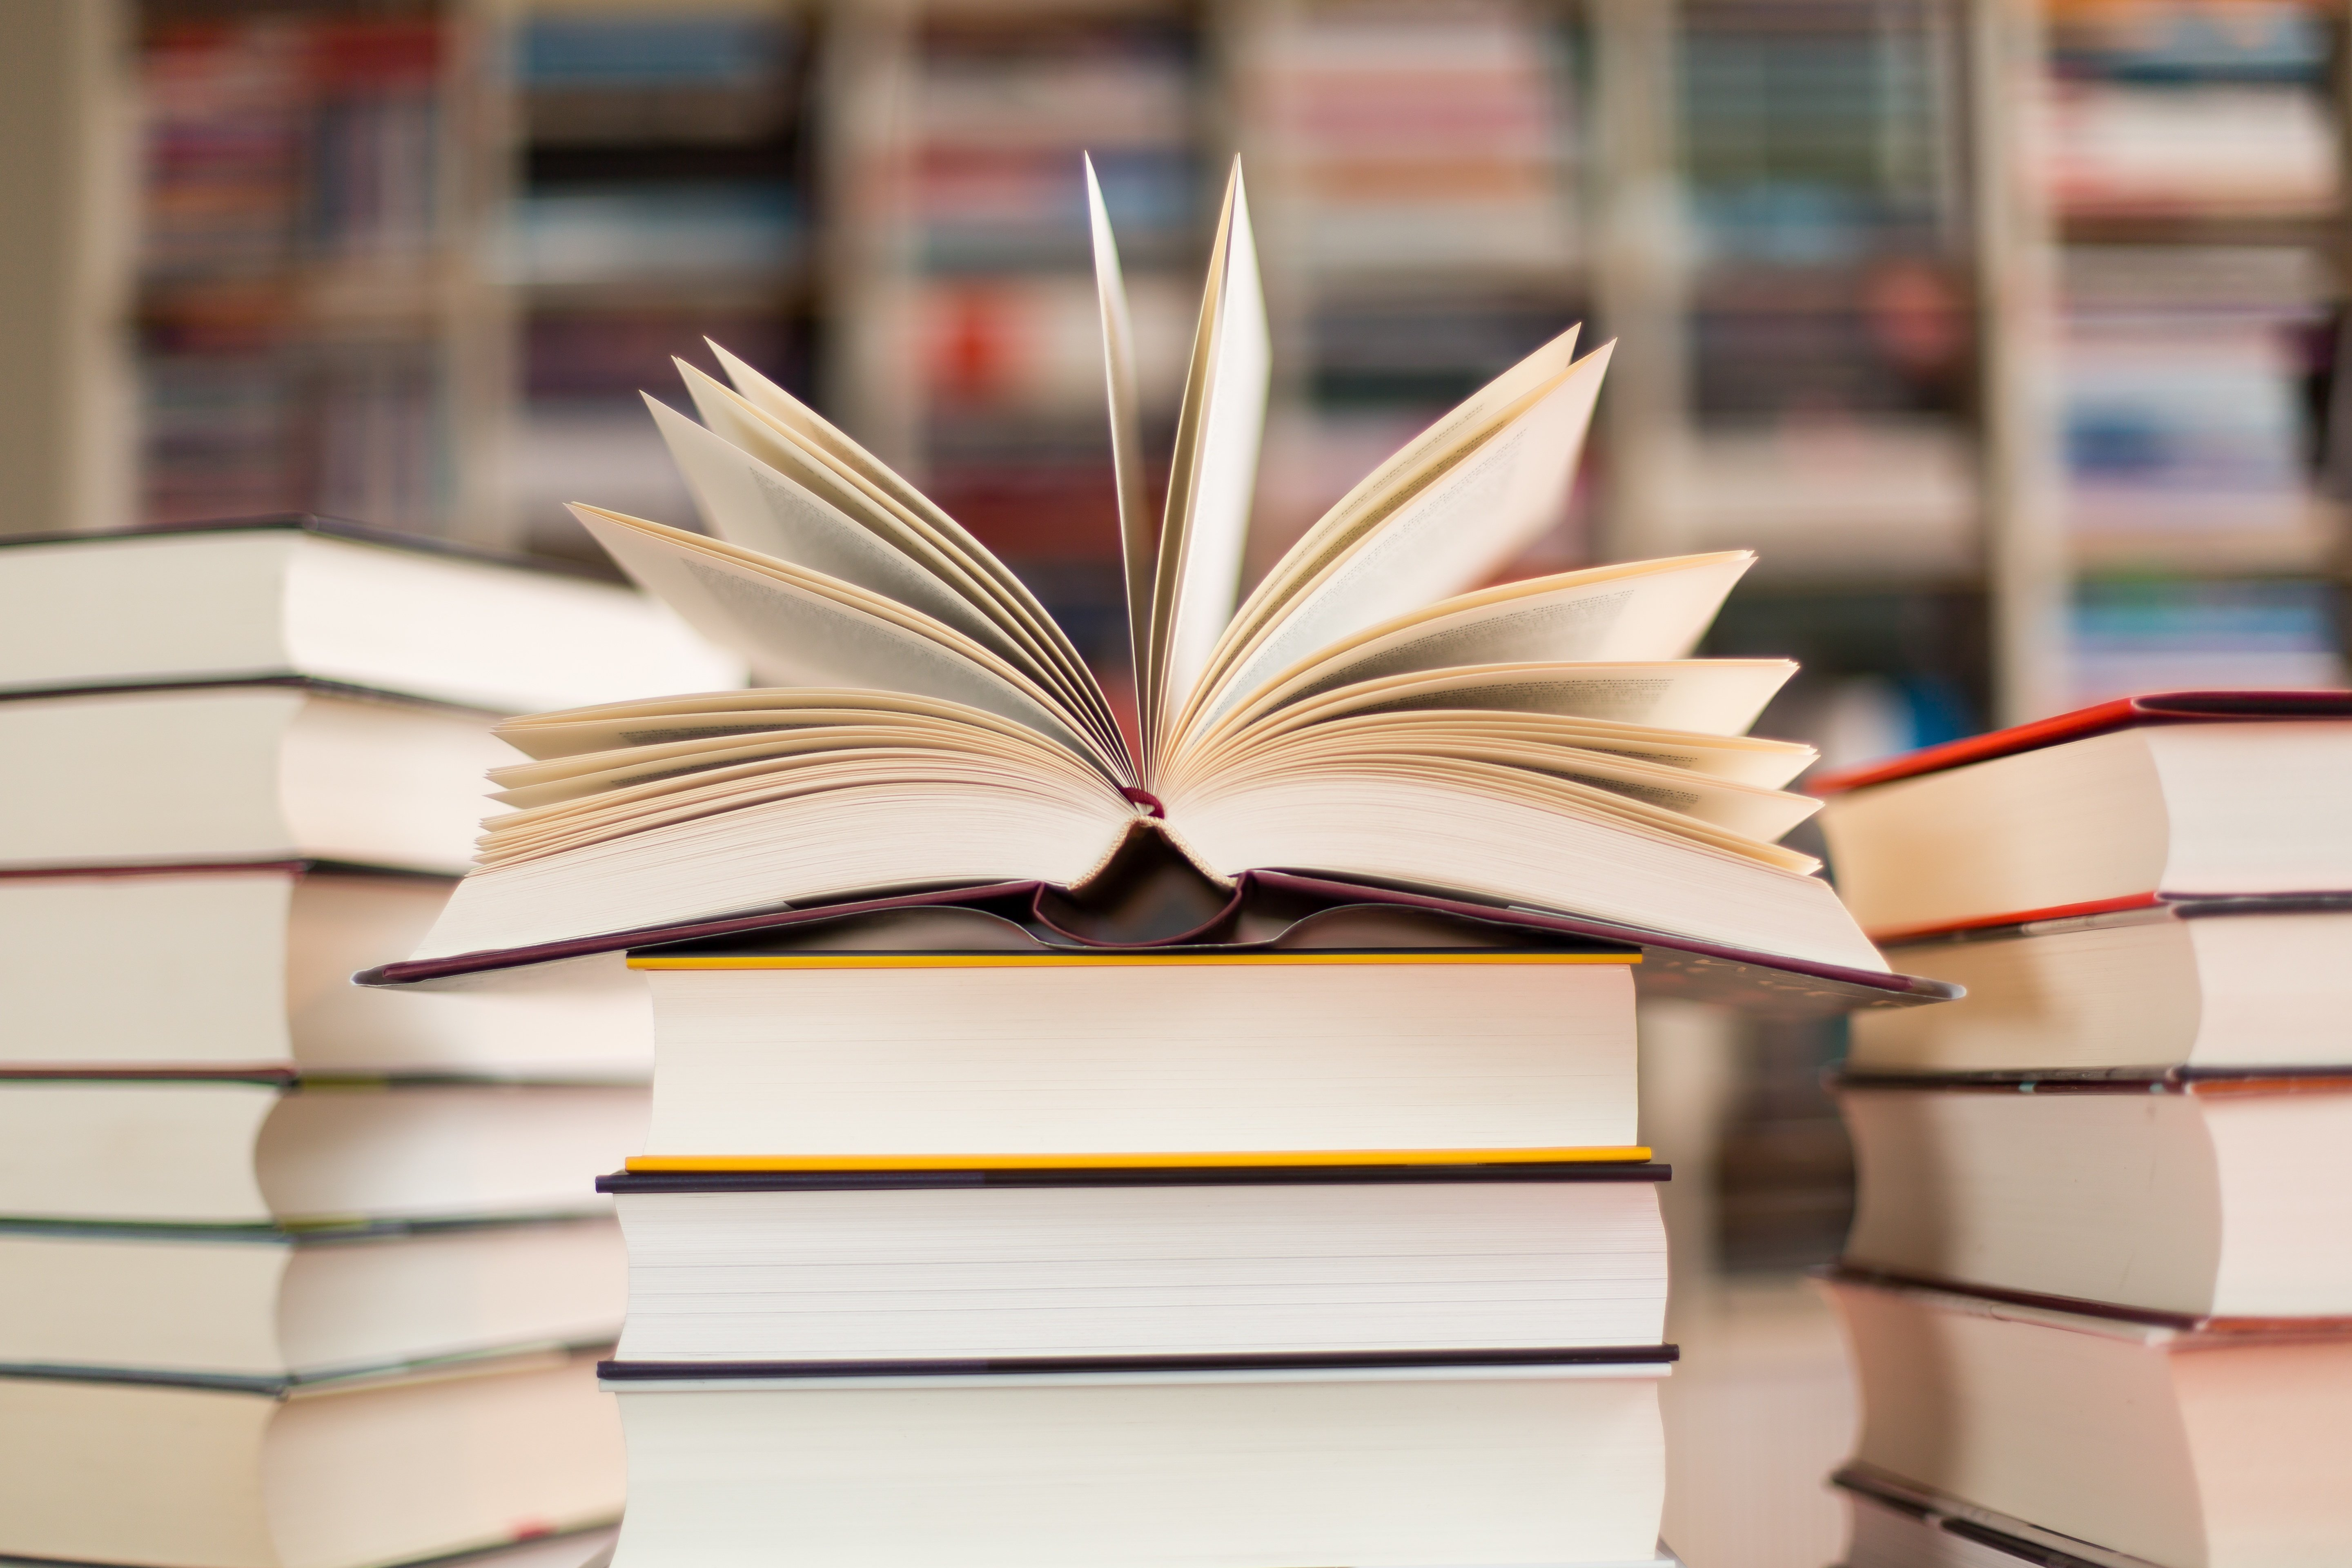 6 College-Curated Books to Read Over Winter Break